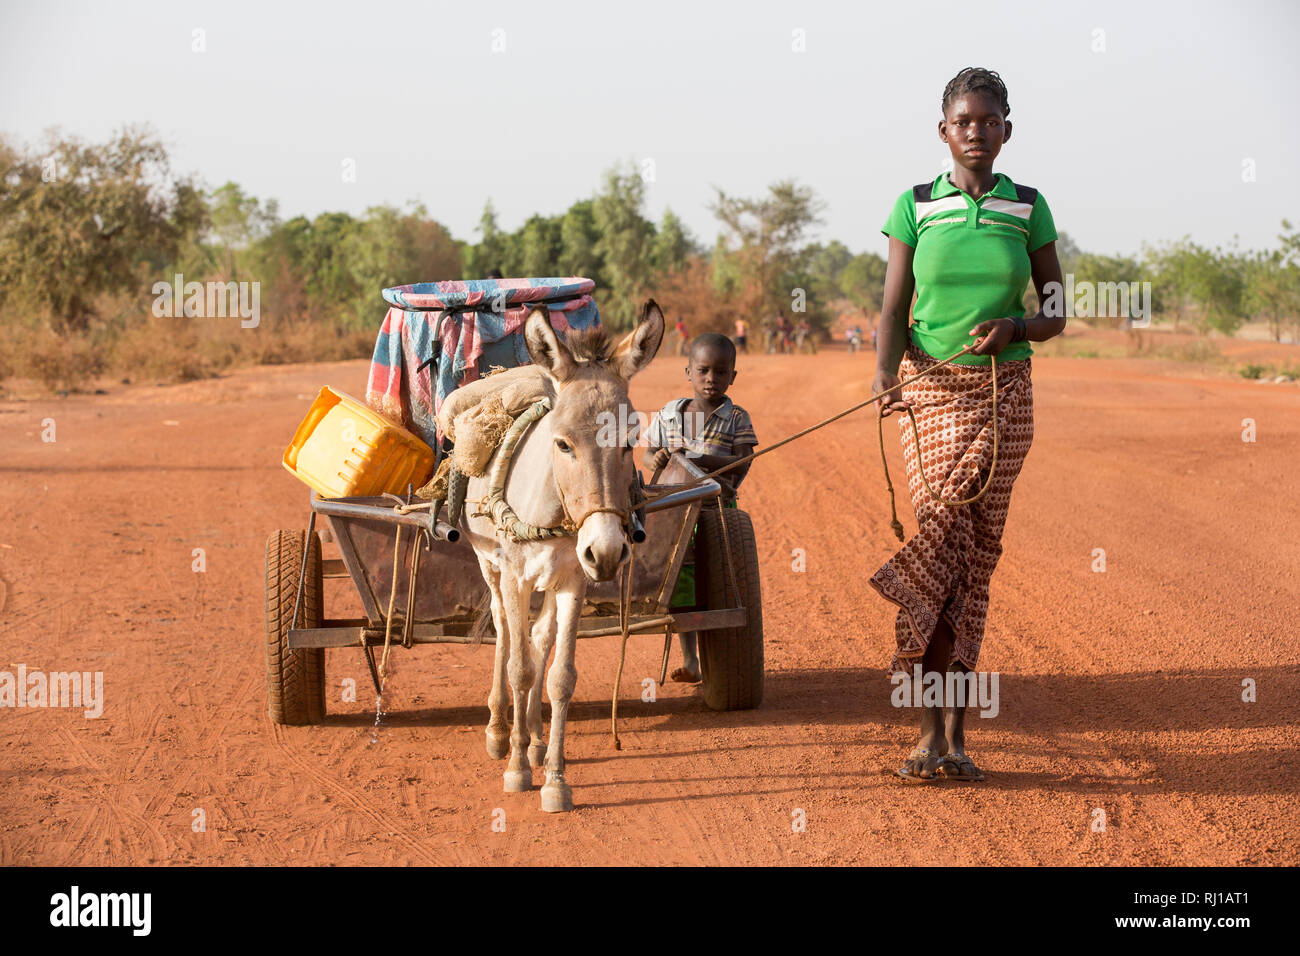 Samba village, Yako Province, Burkina Faso: Abzetta Sondo, 19, returns with full water  container from the well for her household. Stock Photo